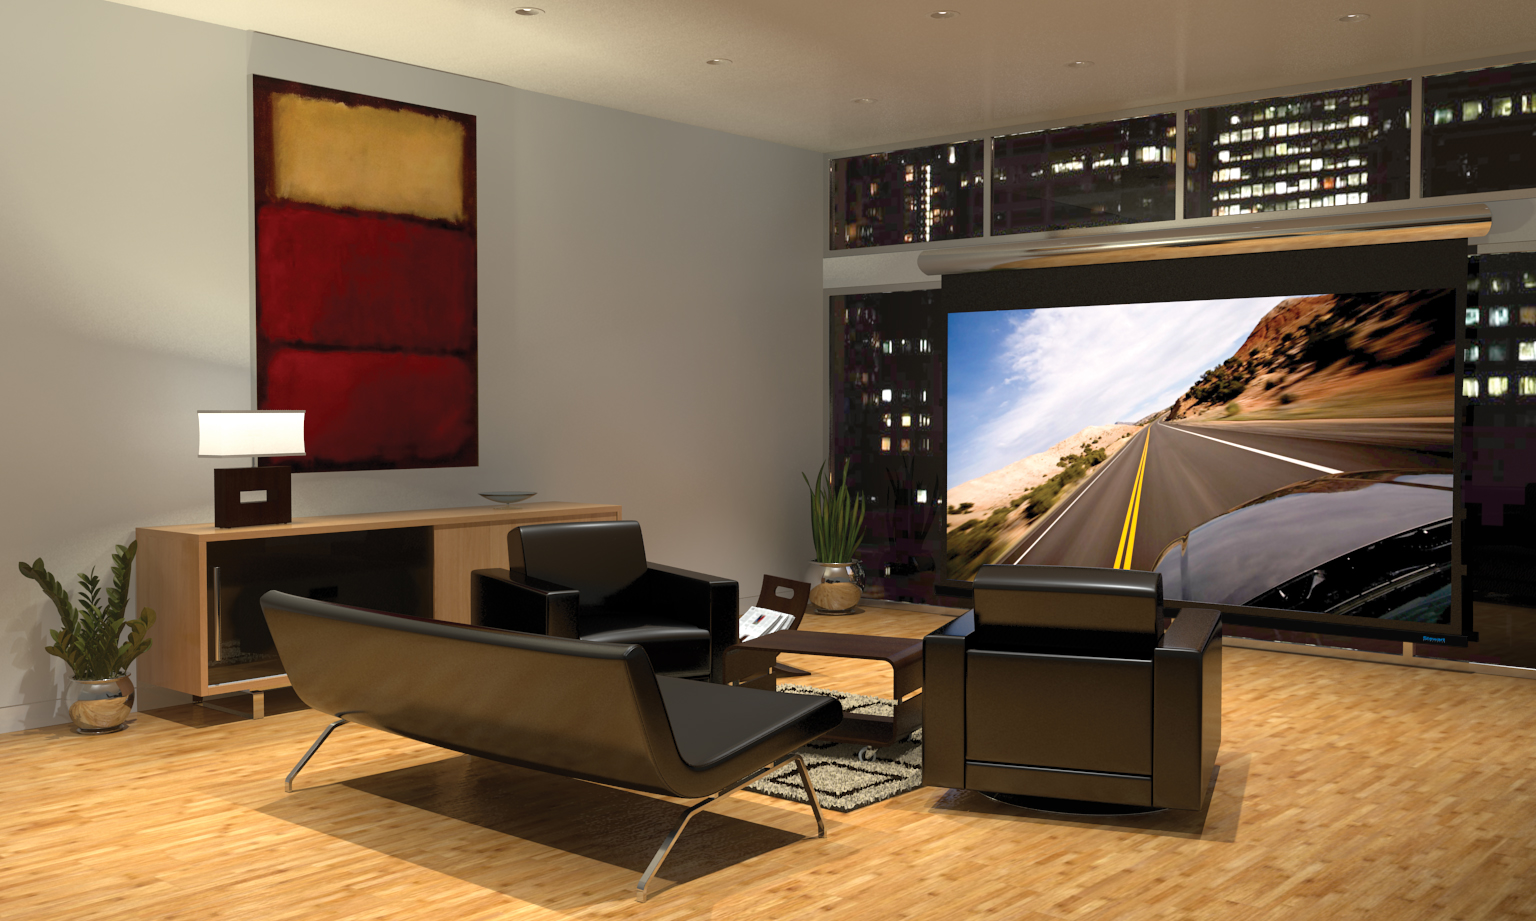 Studiomorado cuarto de entretenimiento entertainment room for Small entertainment room decorating ideas